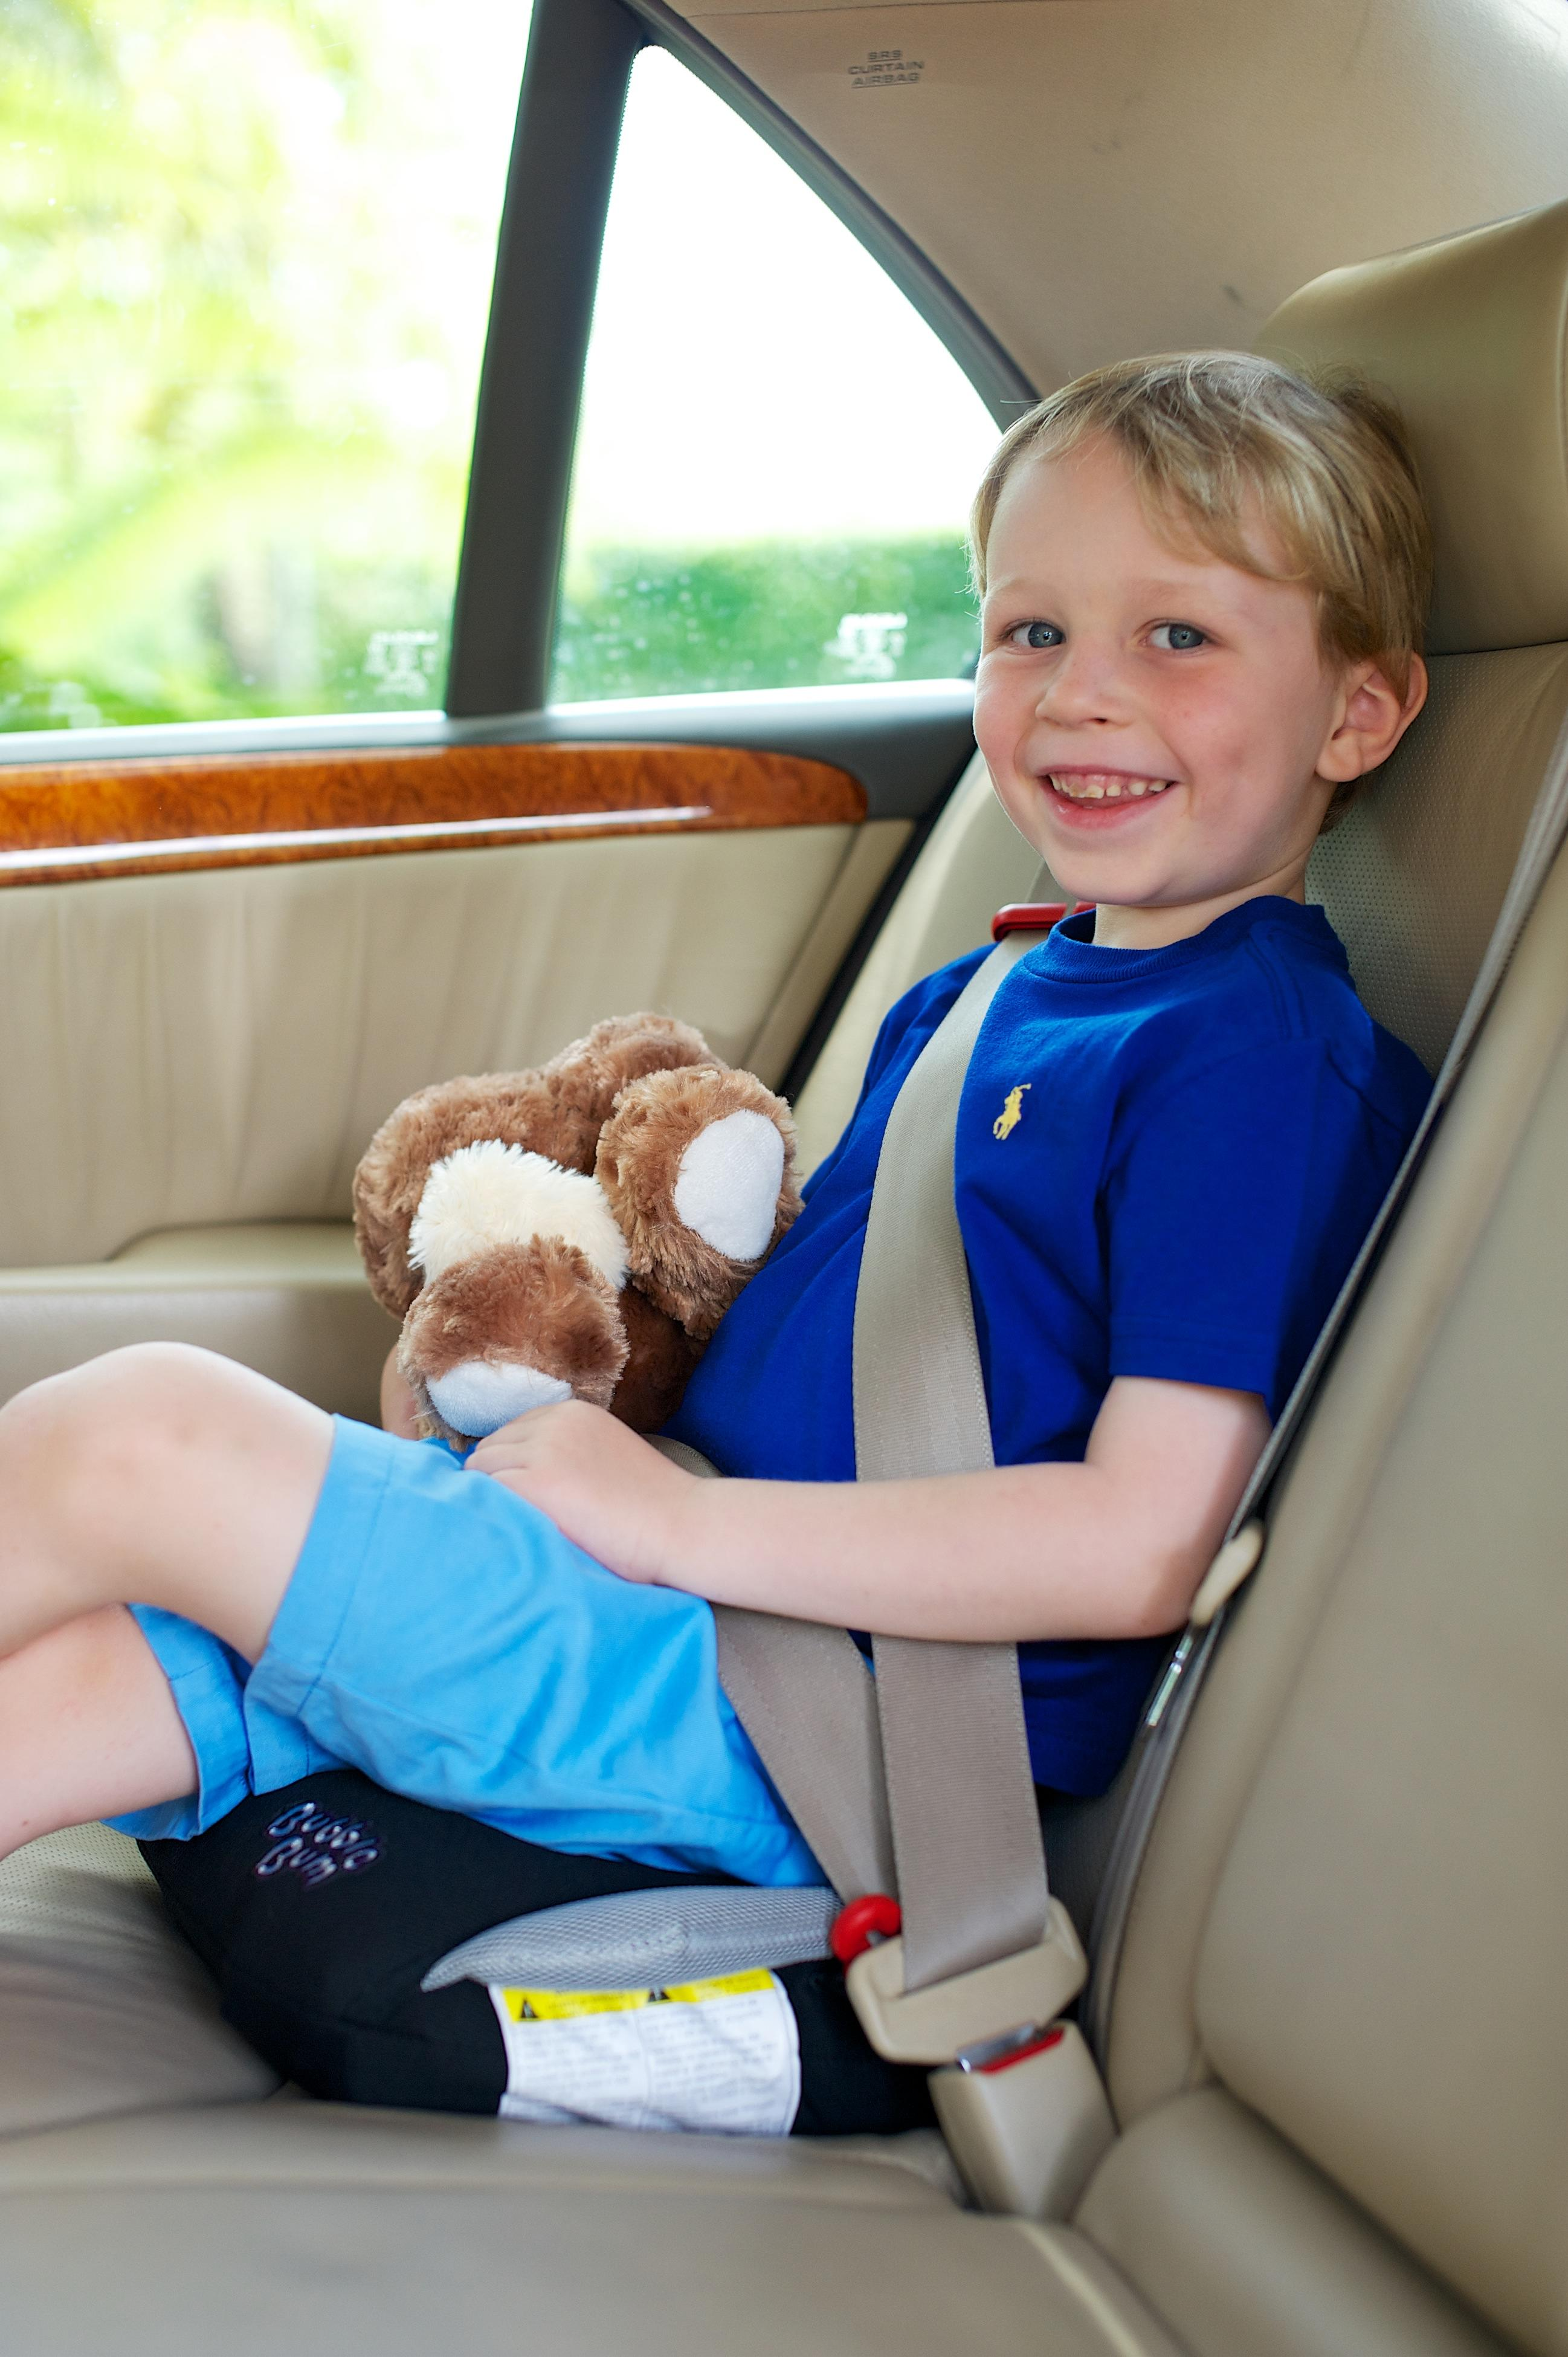 BubbleBum Booster Seat Review - The Inquisitive Mom